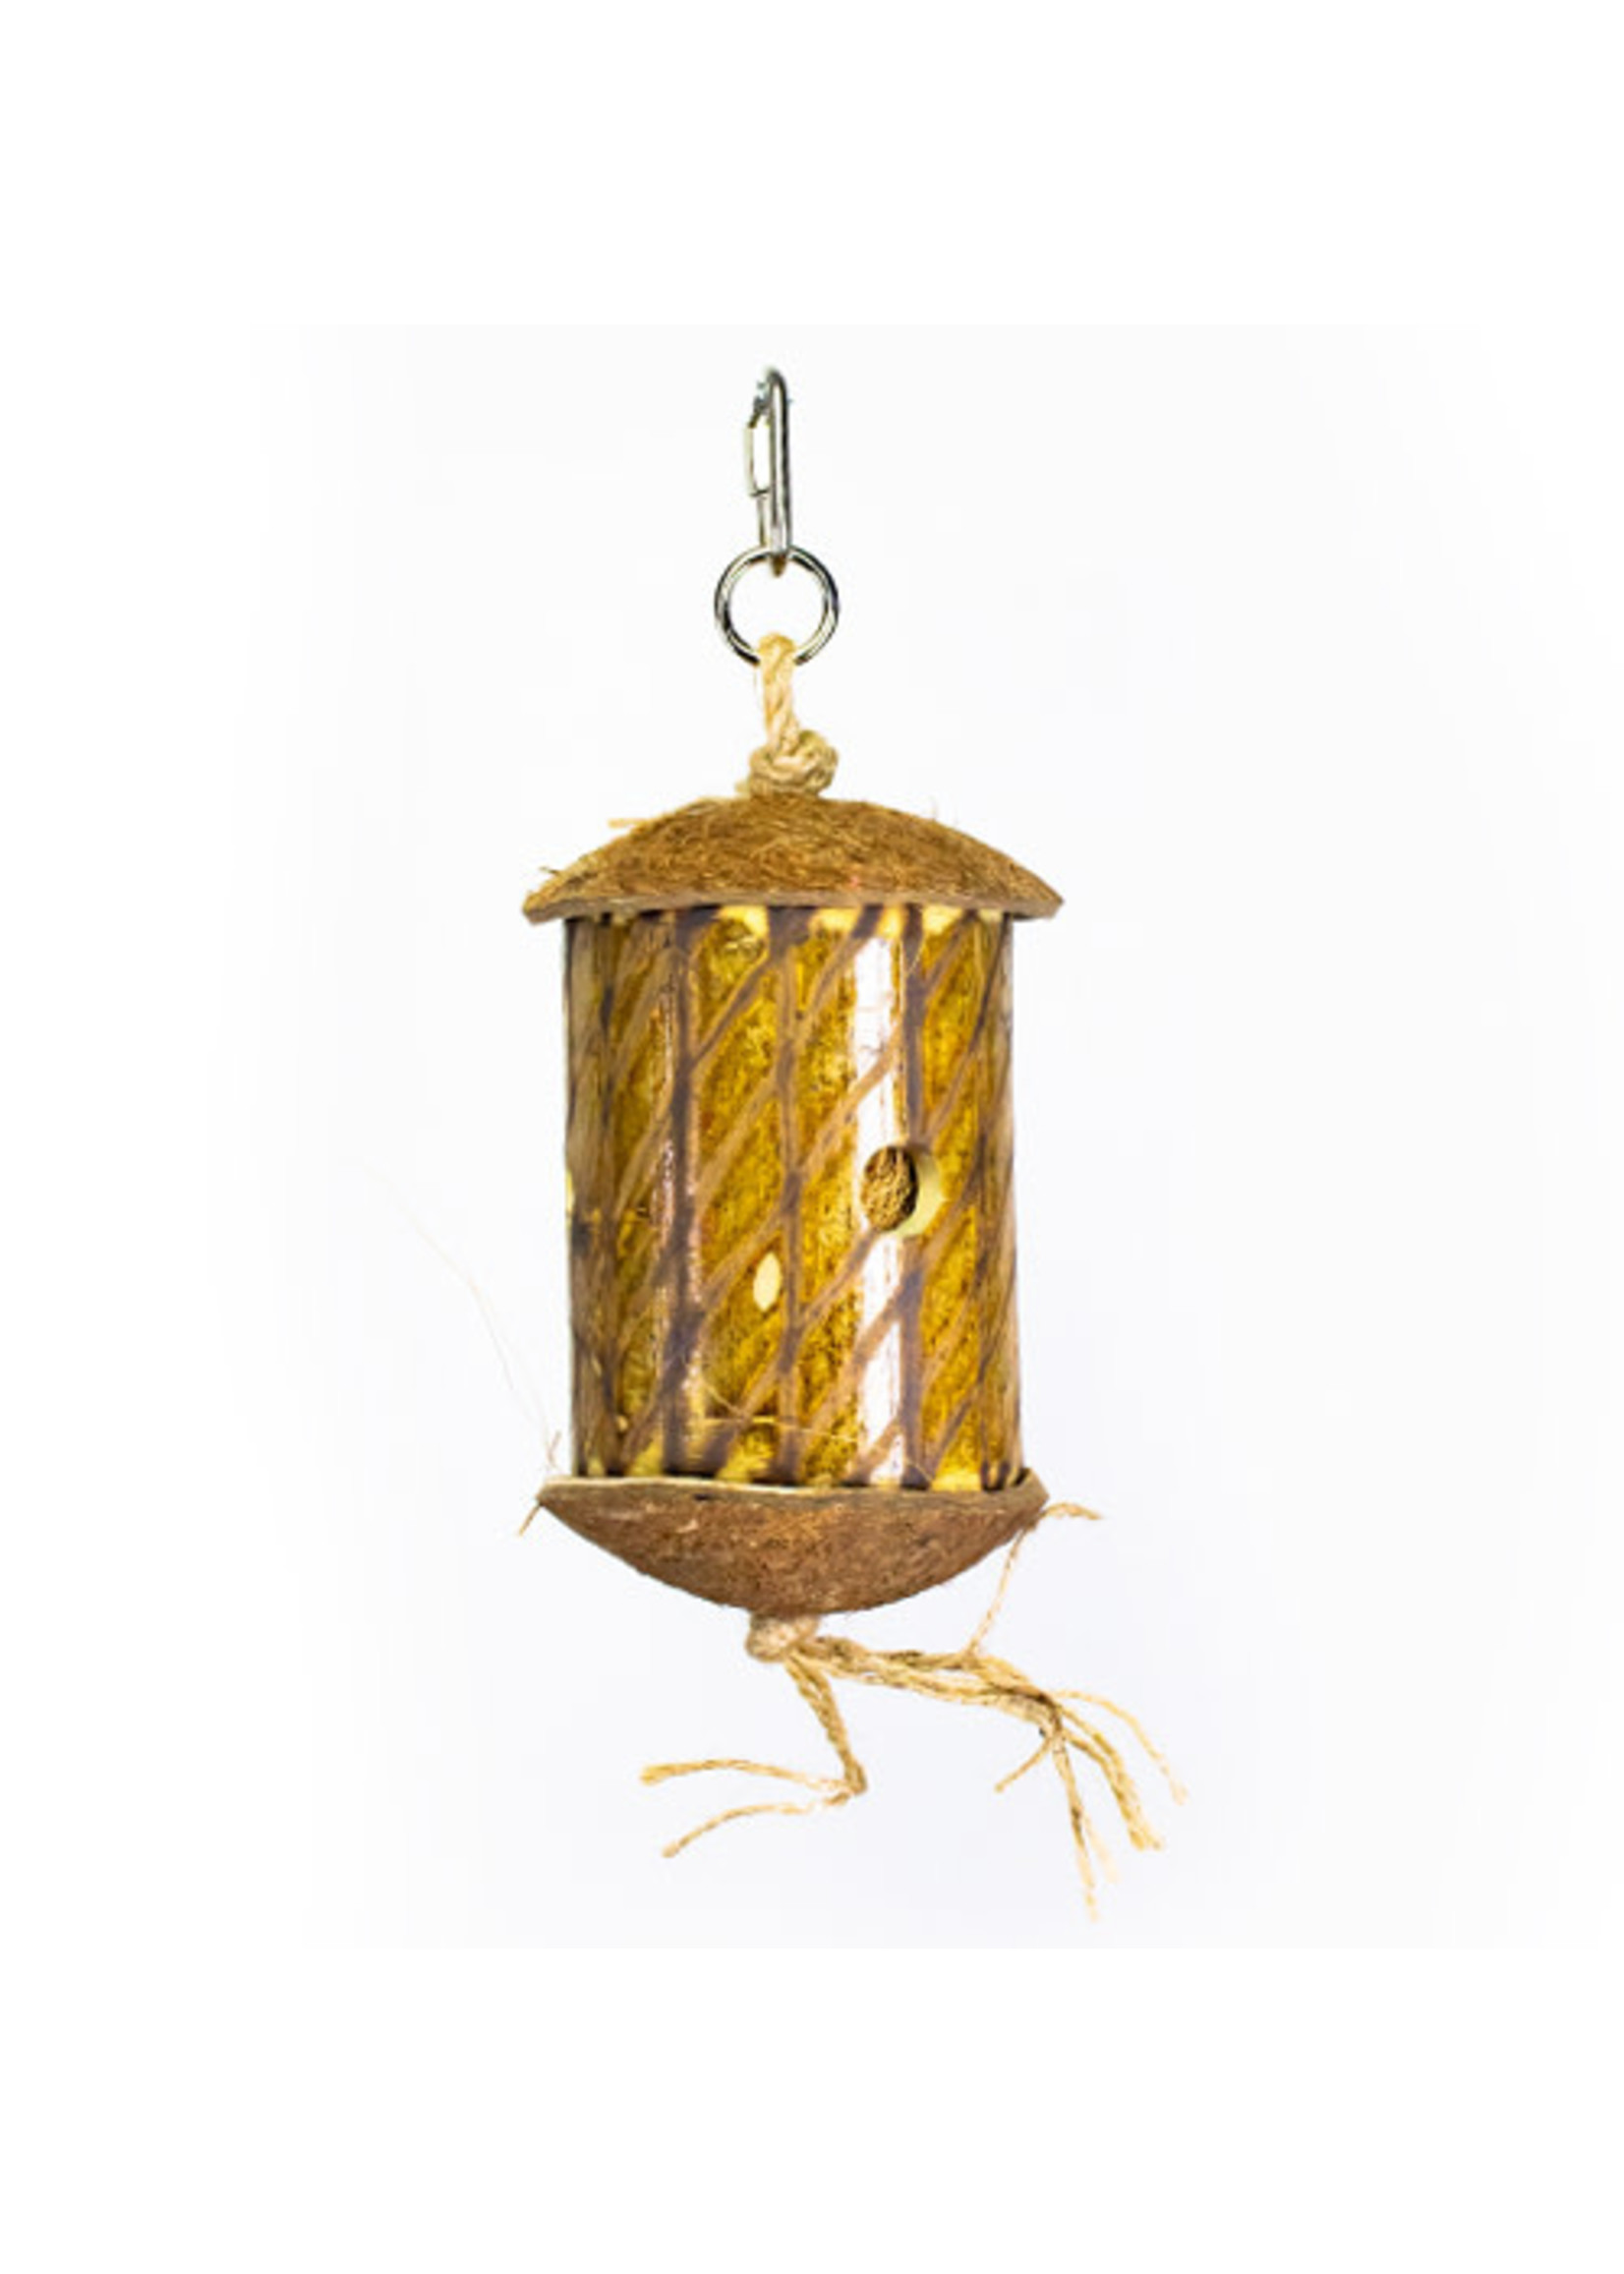 Kings Cages Kings S025 FORAGING BAMBOO TUBE WITH COCONUT FIBER S025